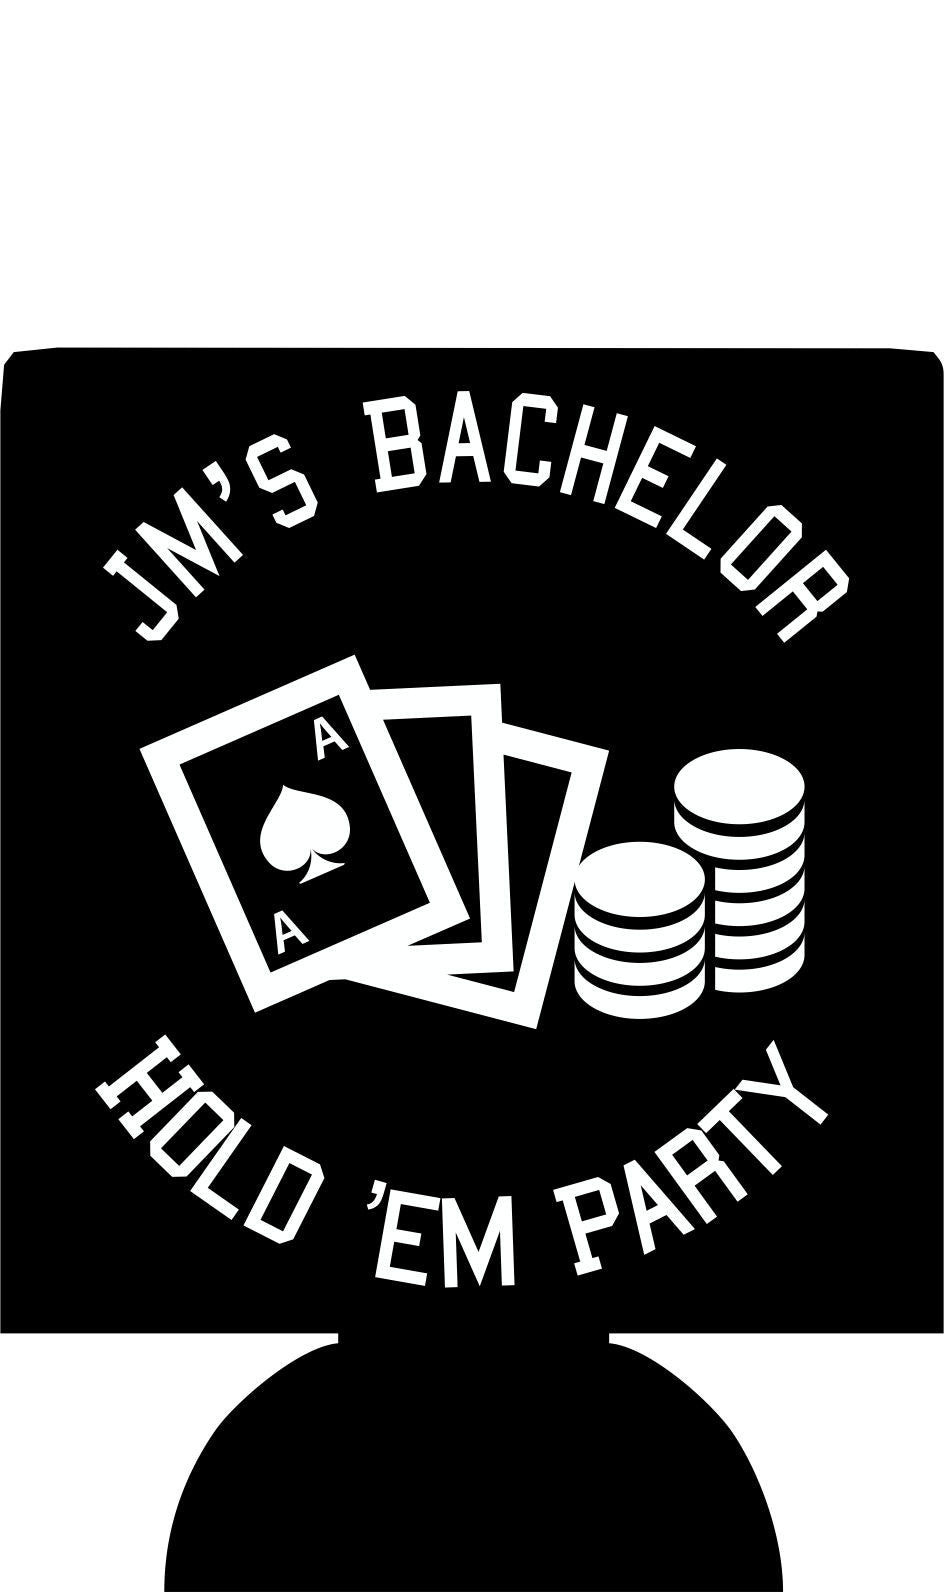 Hold em poker Bachelor party koozie